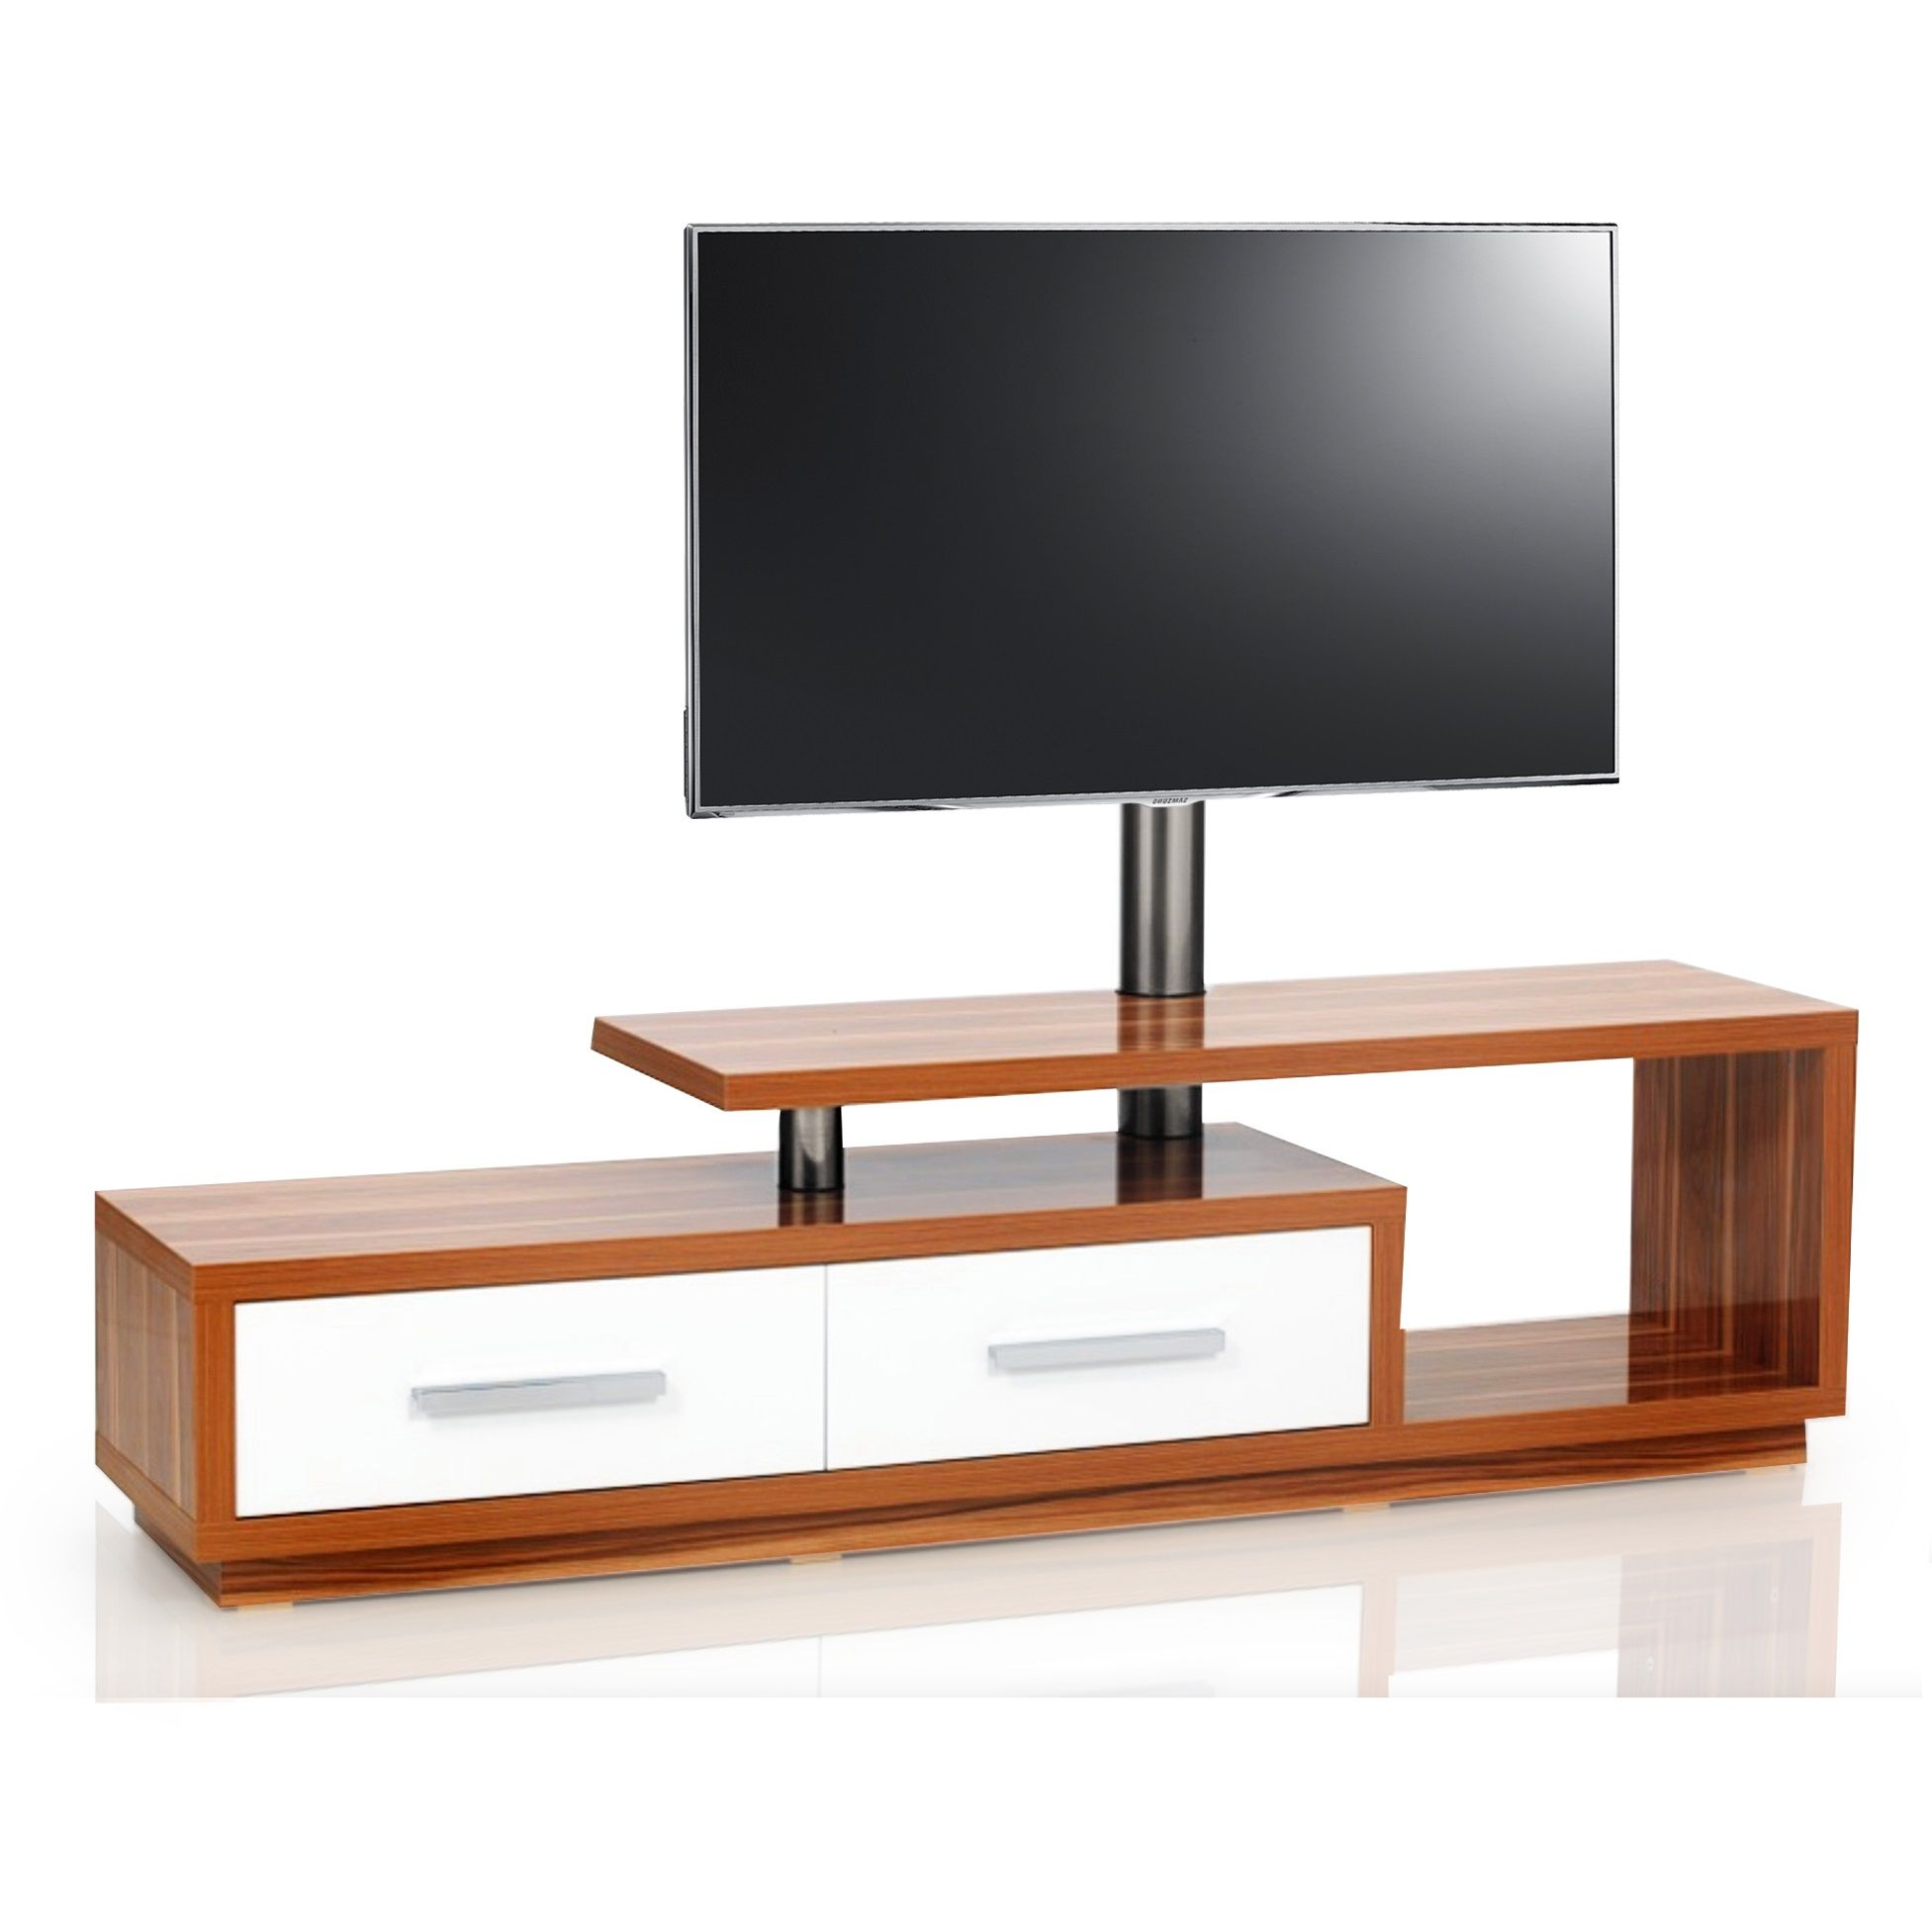 Best Table De Tv Design Images Joshkrajcik Us Joshkrajcik Us # Support Meuble Tv